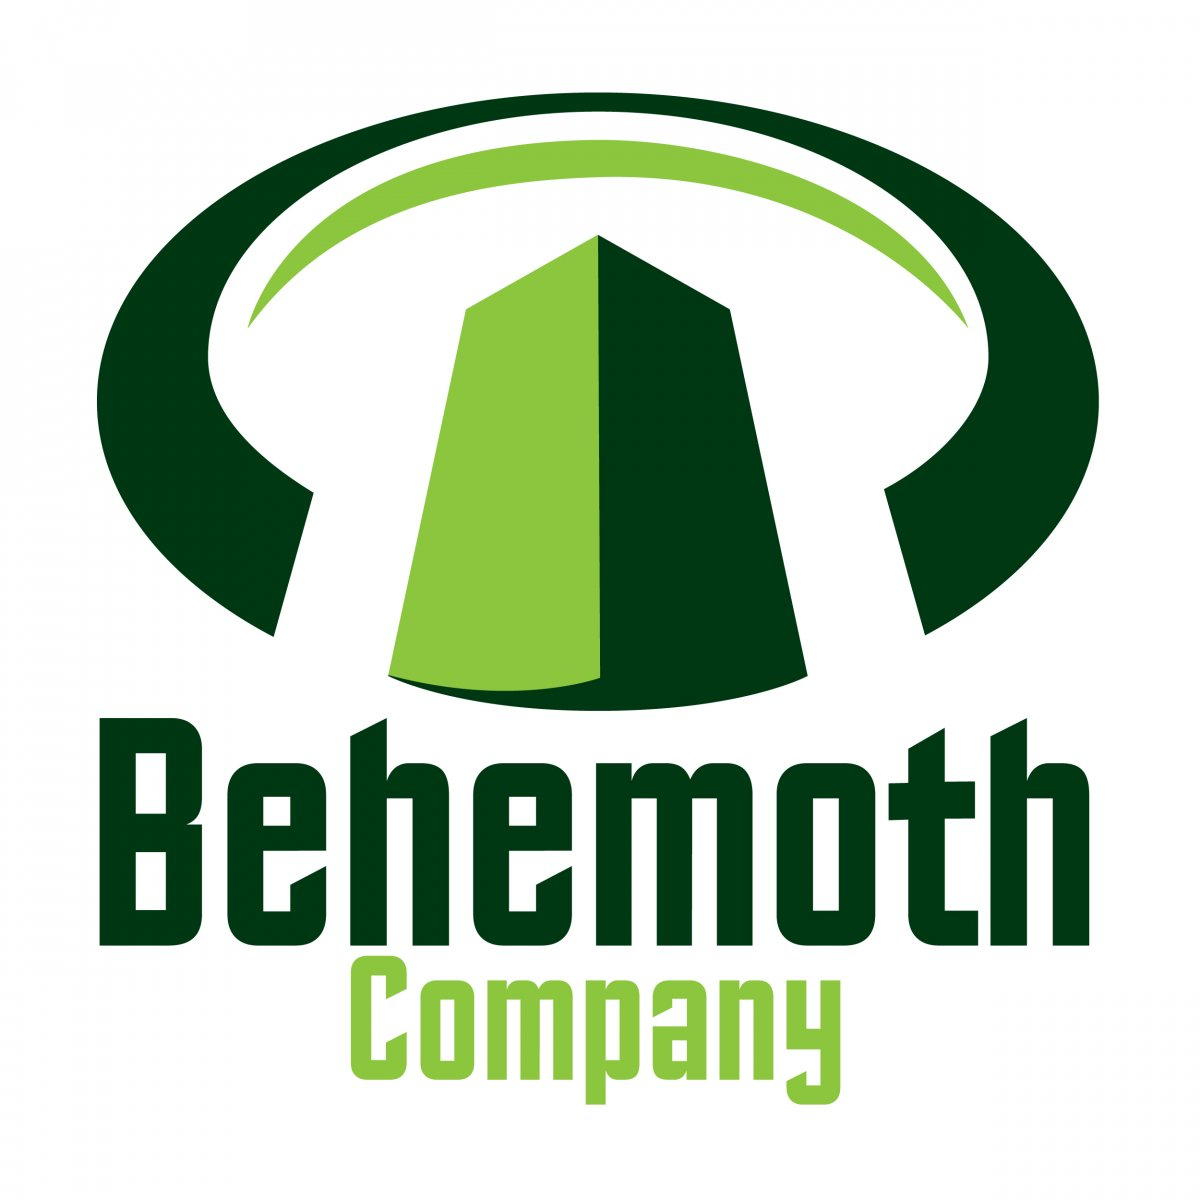 Behemoth Company Real Estate Brokerage logo